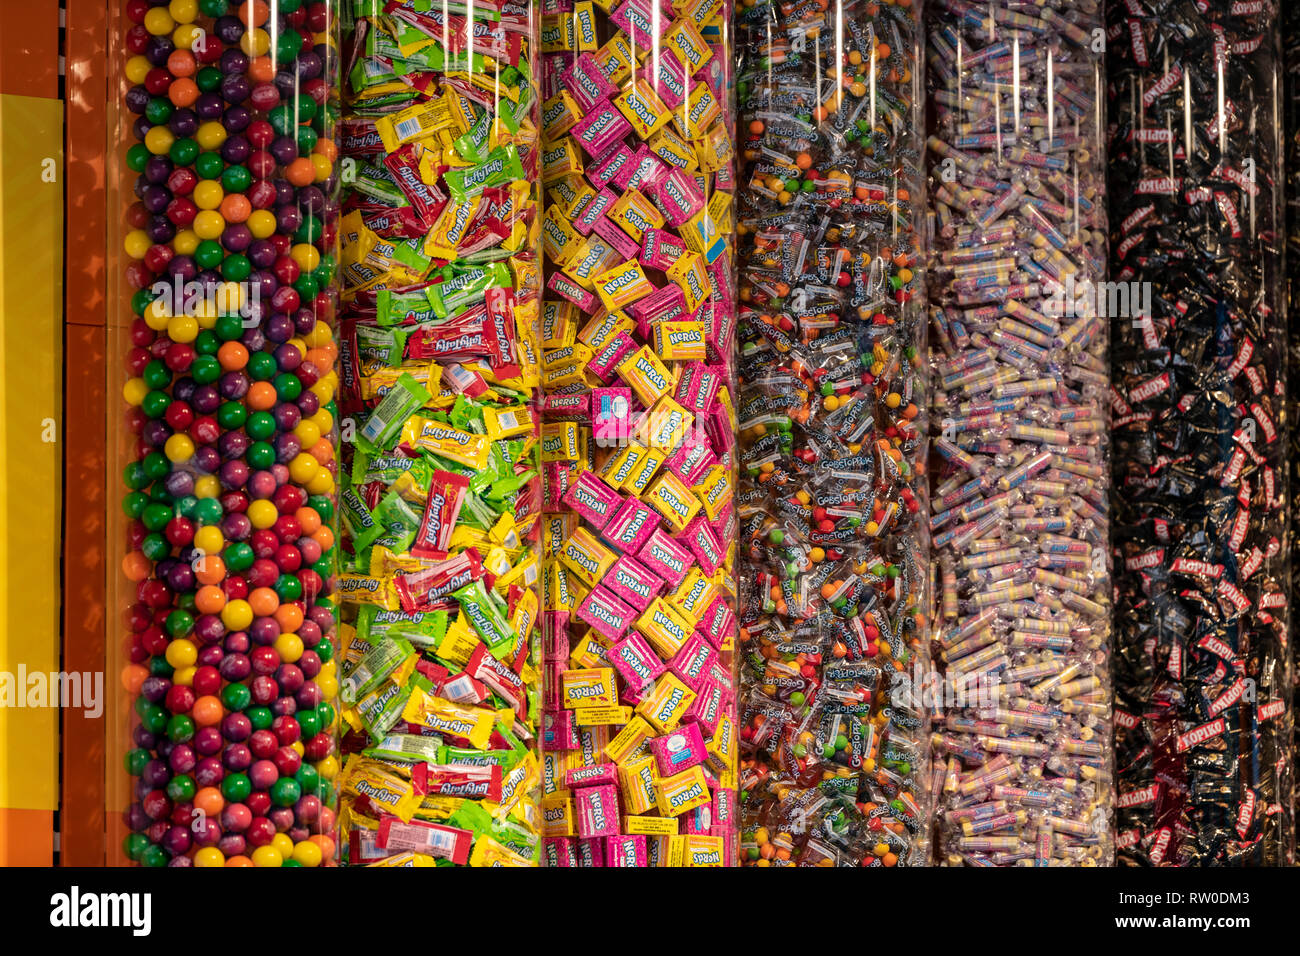 Netherlands; Gouda, 2017, displays of colourful candy notably Nerds the Candy of the year in 1985. - Stock Image